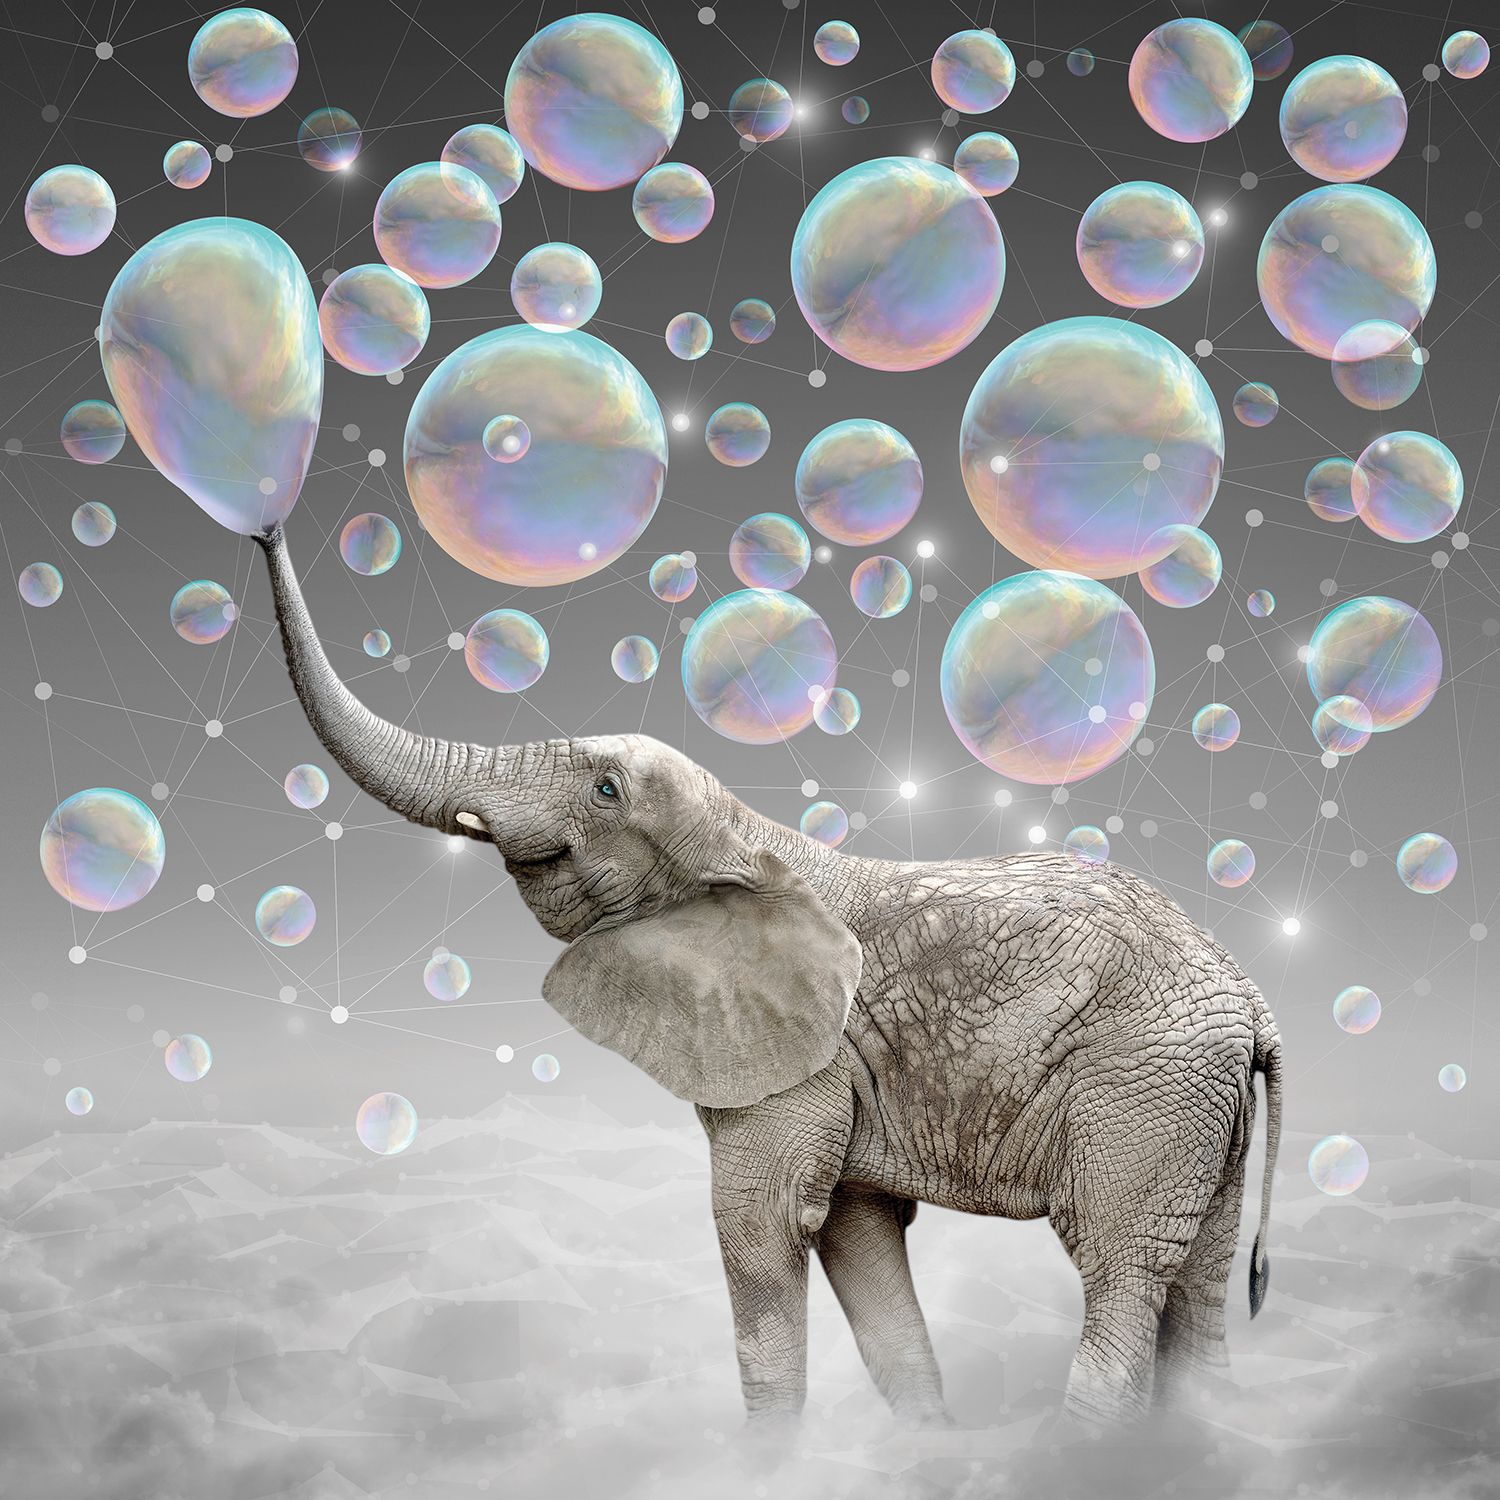 an elephant with blue eyes standing on a cloud blowing bubbles with its trunk